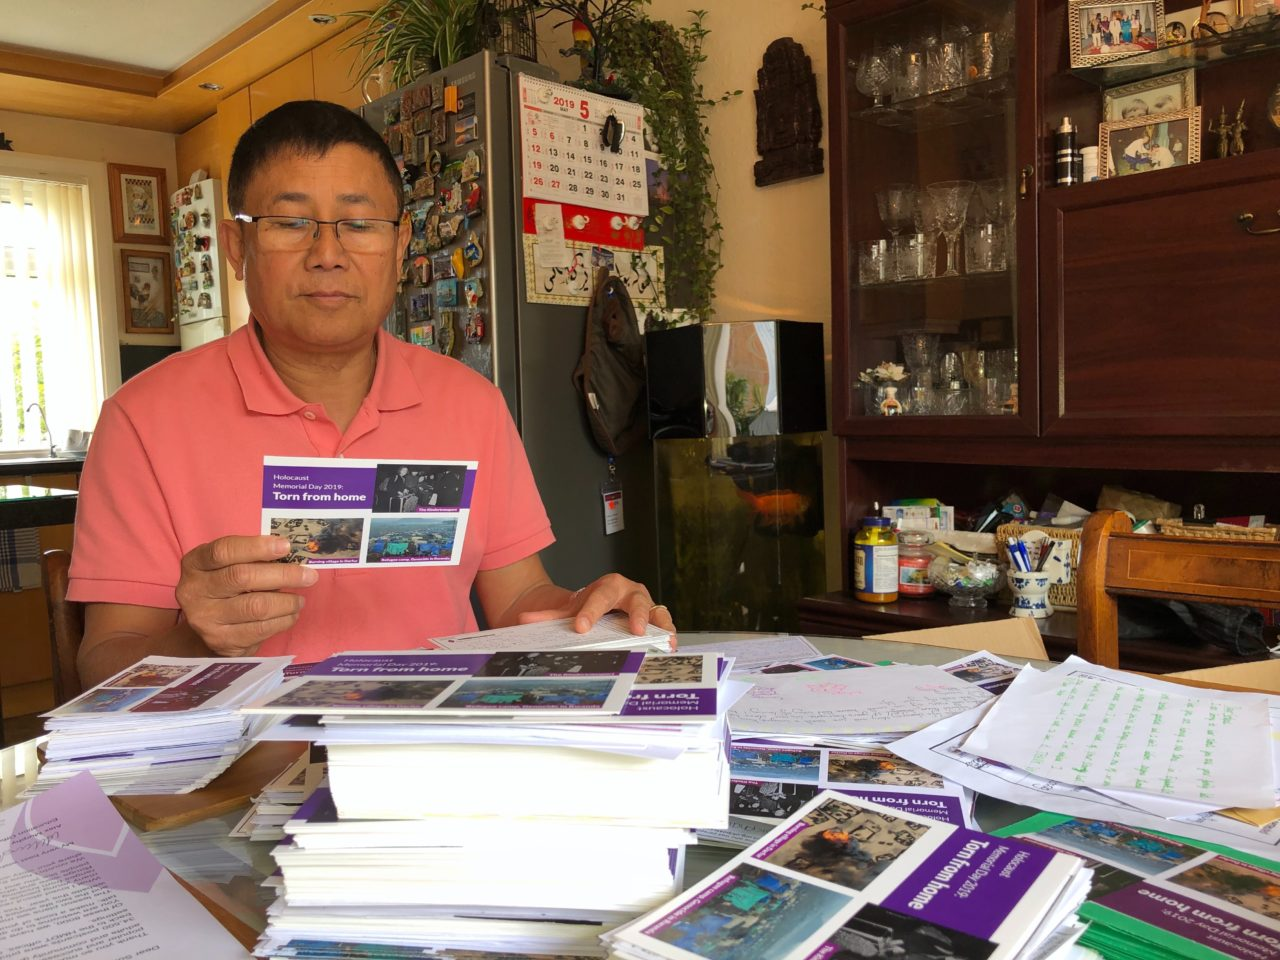 Survivors receive thousands of HMD postcards